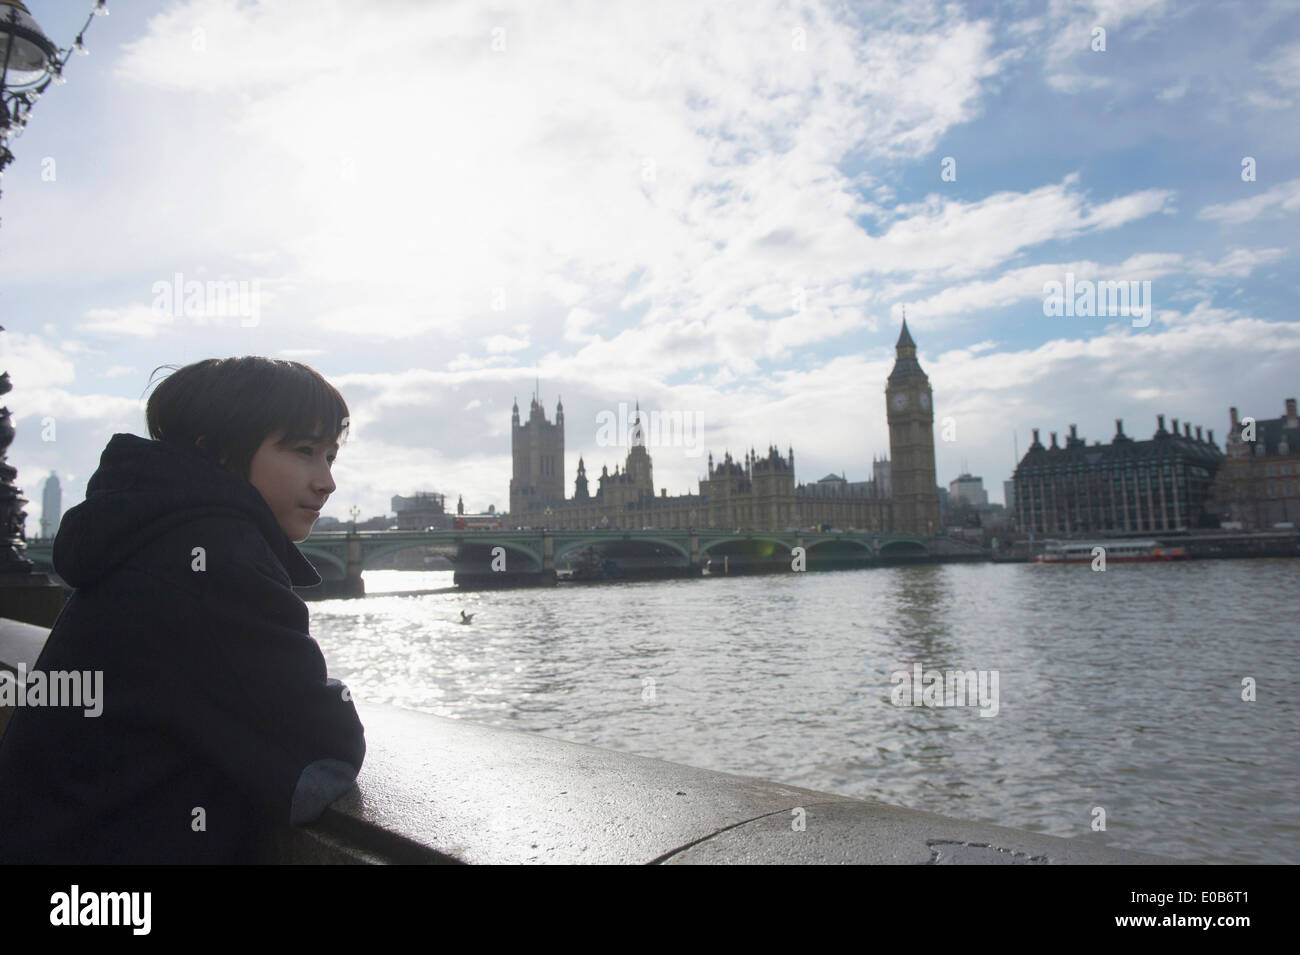 Boy by River Thames, Palace of Westminster in background, London - Stock Image